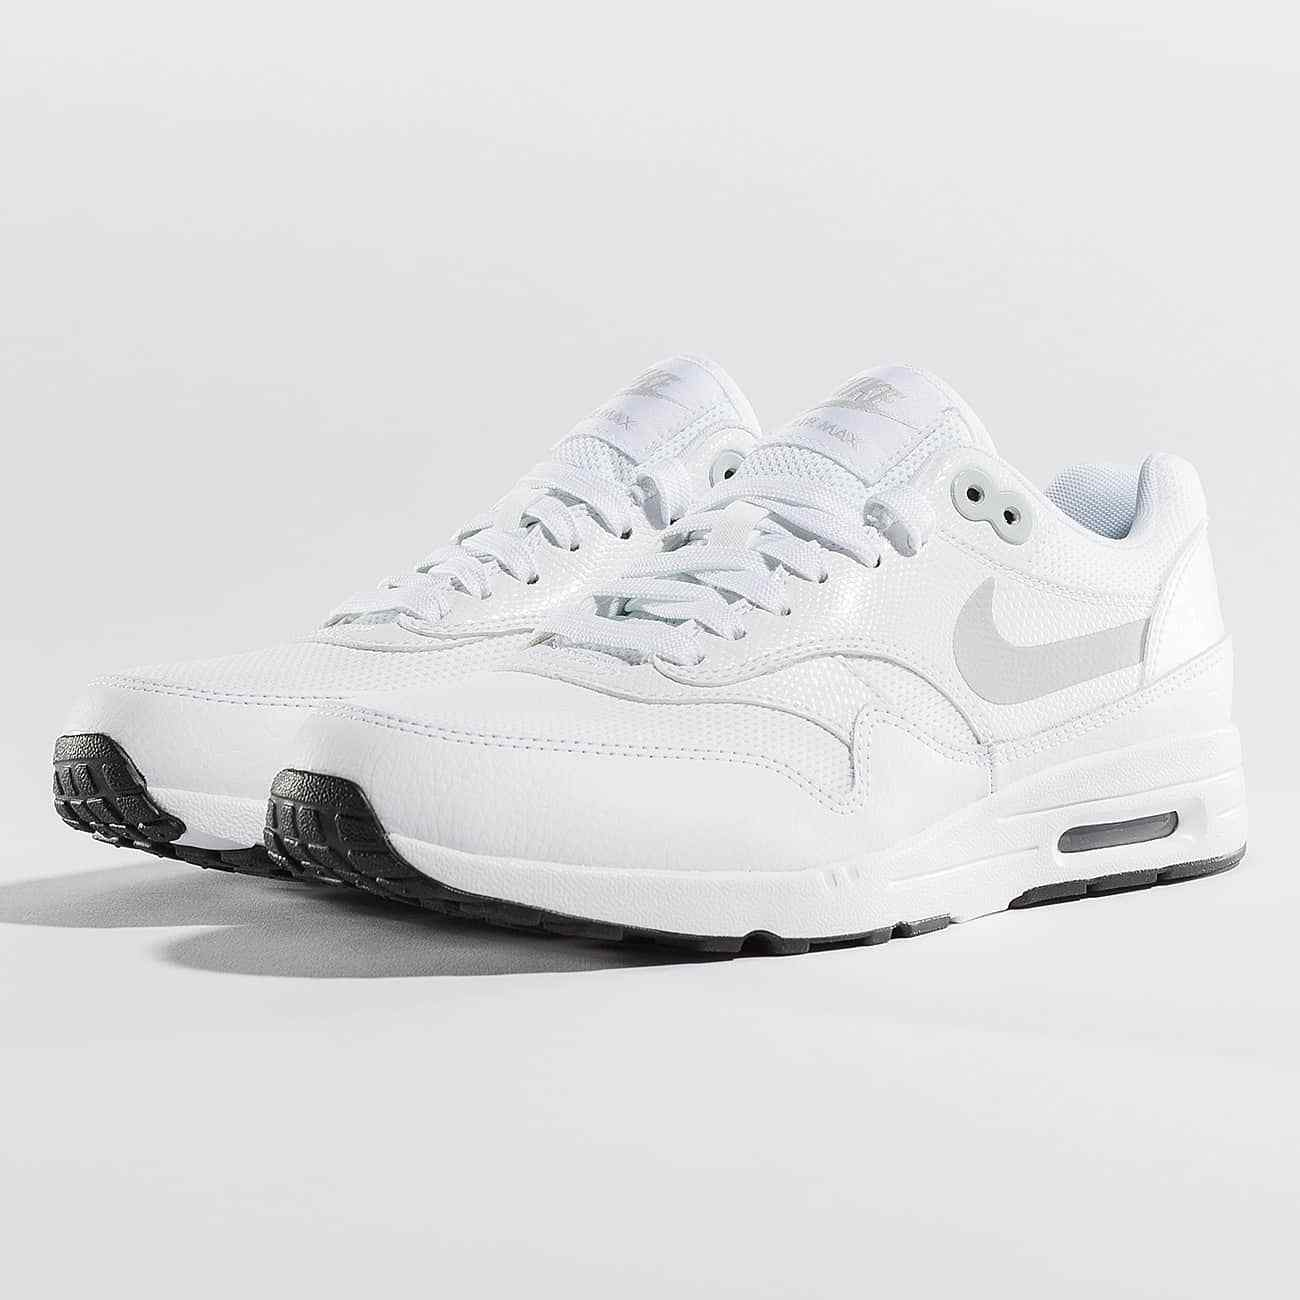 Nike Air femmes Max 1 Ultra 20 femmes Air Baskets in blanc 5110 8c6df9